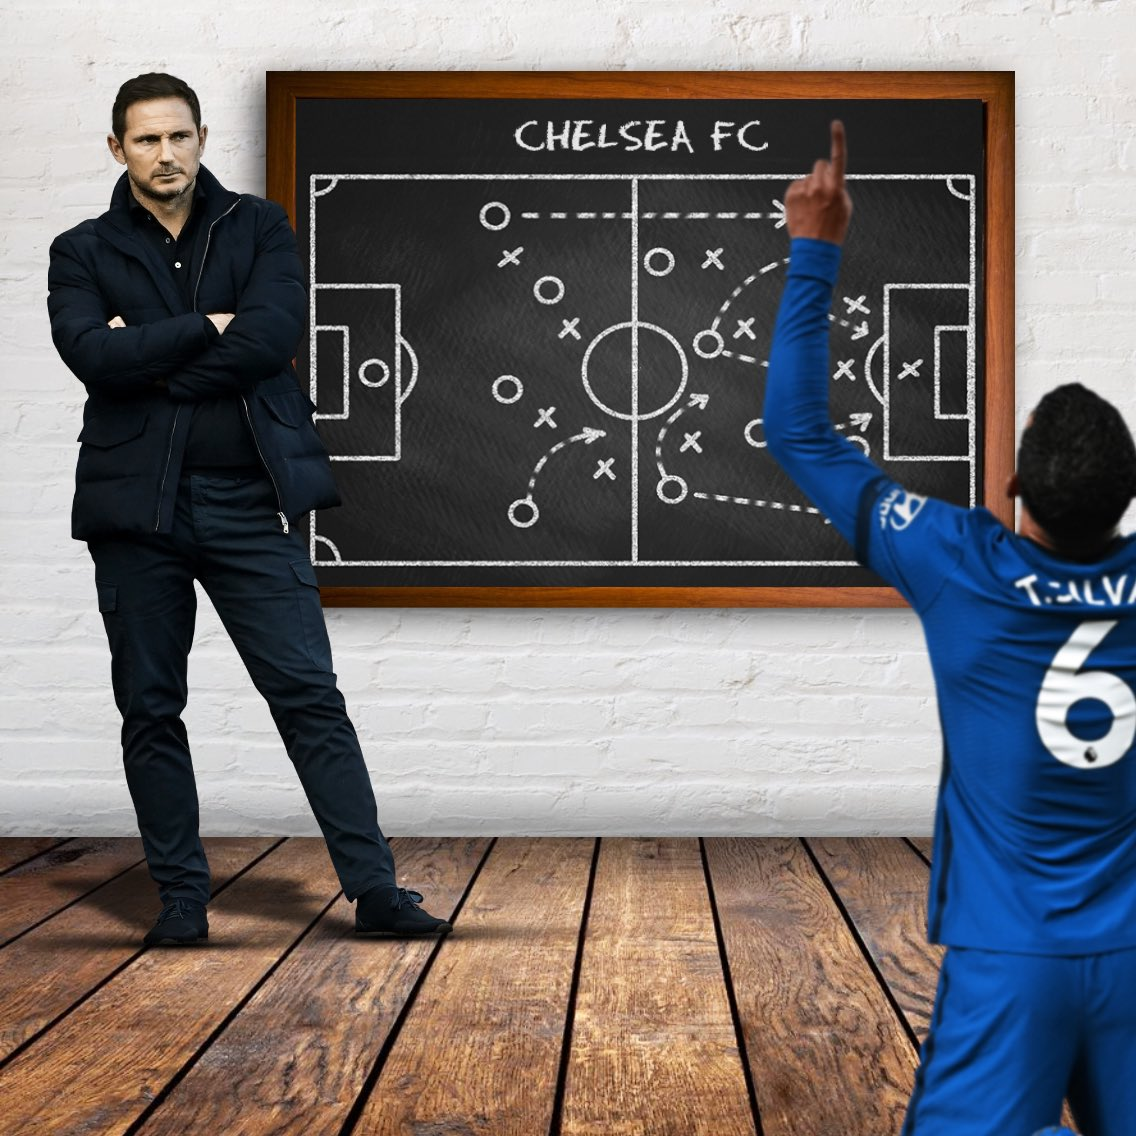 What needs to change at Chelsea? Edit from my ig: CFC.SW6  #chelsea #football #premierleague #chelseafc #cfc #soccer #cfclei #ktbffh #london #leicfc #championsleague #chelseafans #fifa #epl #stamfordbridge #lampard